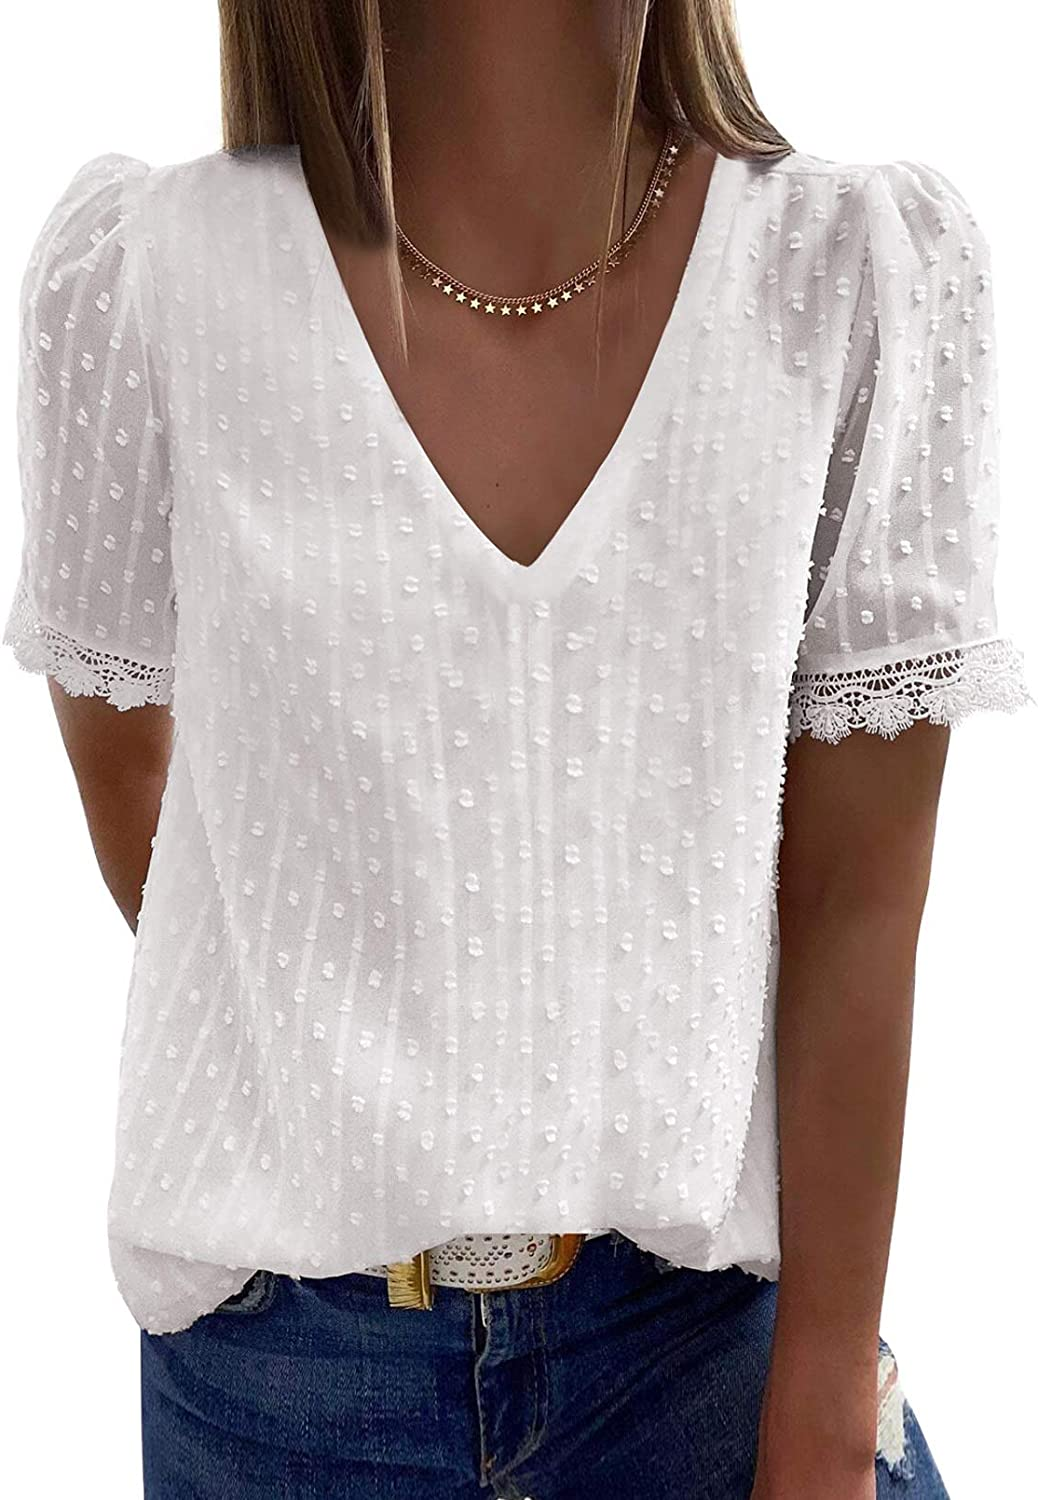 Diukia Women's Summer Button V Neck Lace Crochet Eyelet Blouse Tops Casual Short Sleeve Solid Color Shirts Blouses